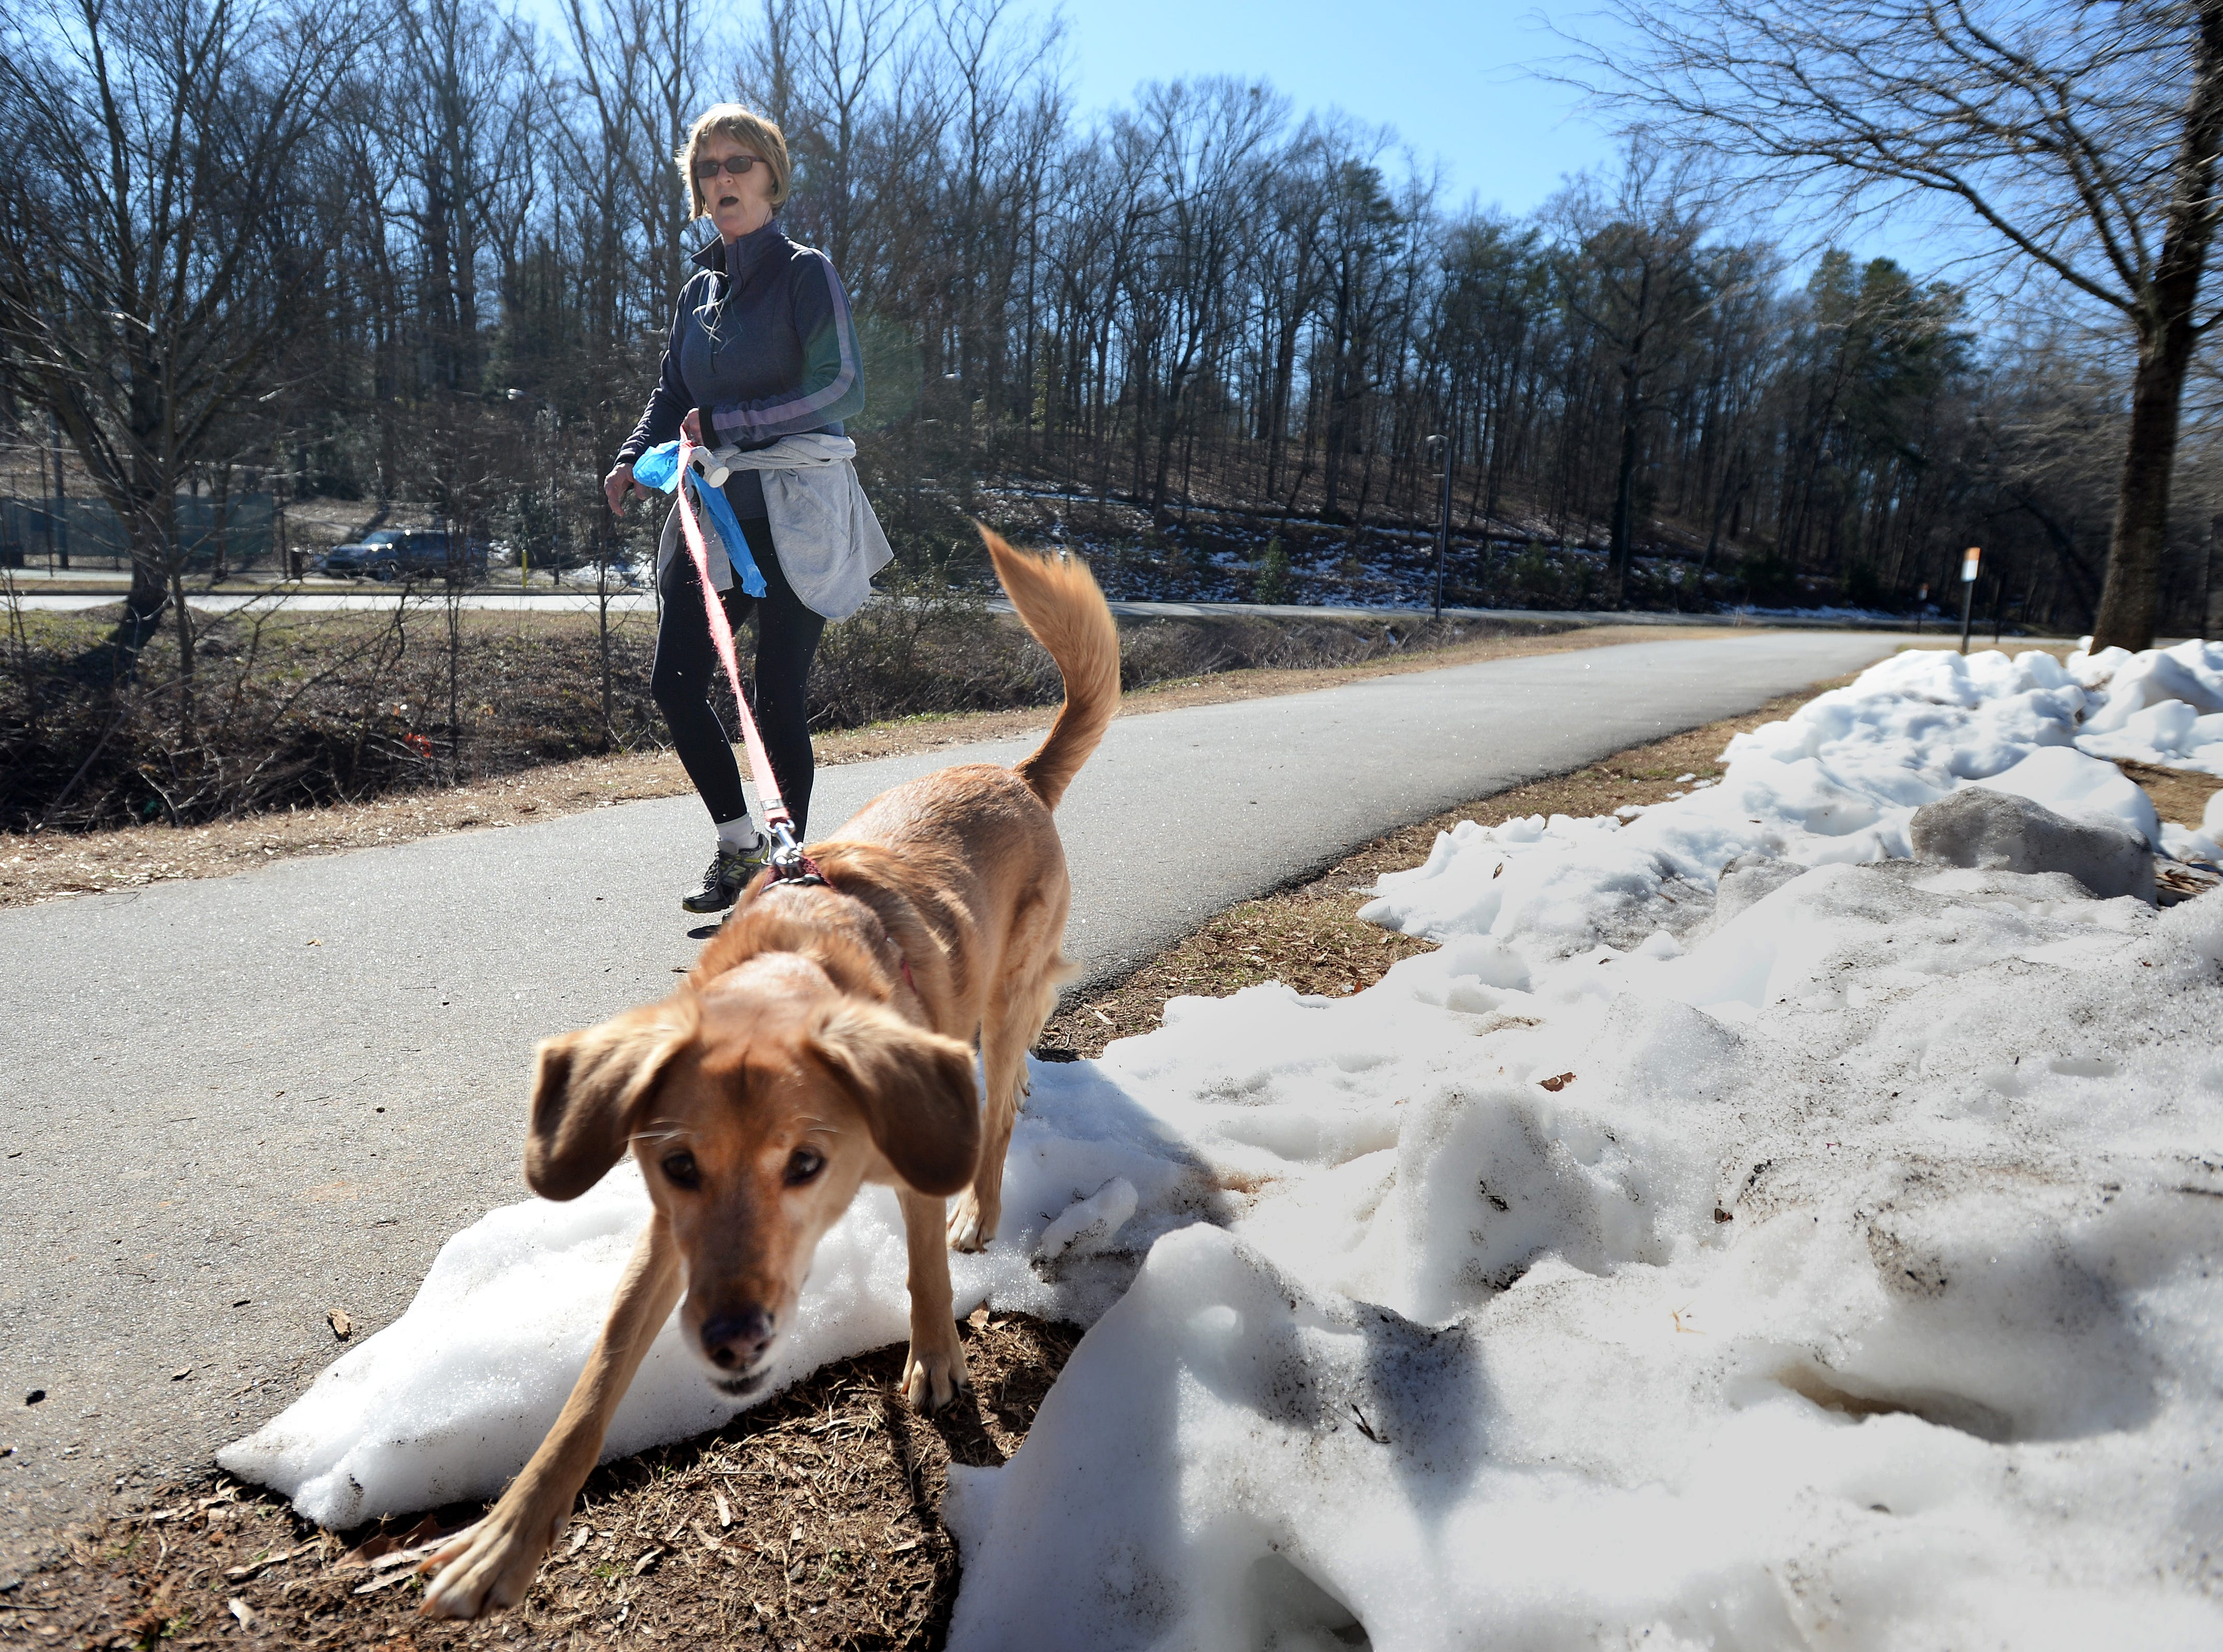 Marcia Cowen walks her dog Lilley past the last remnants of snow in Cleveland Park in Greenville Sunday, February 16, 2014. Temperatures were expected to reach the mid 50s Sunday afternoon.